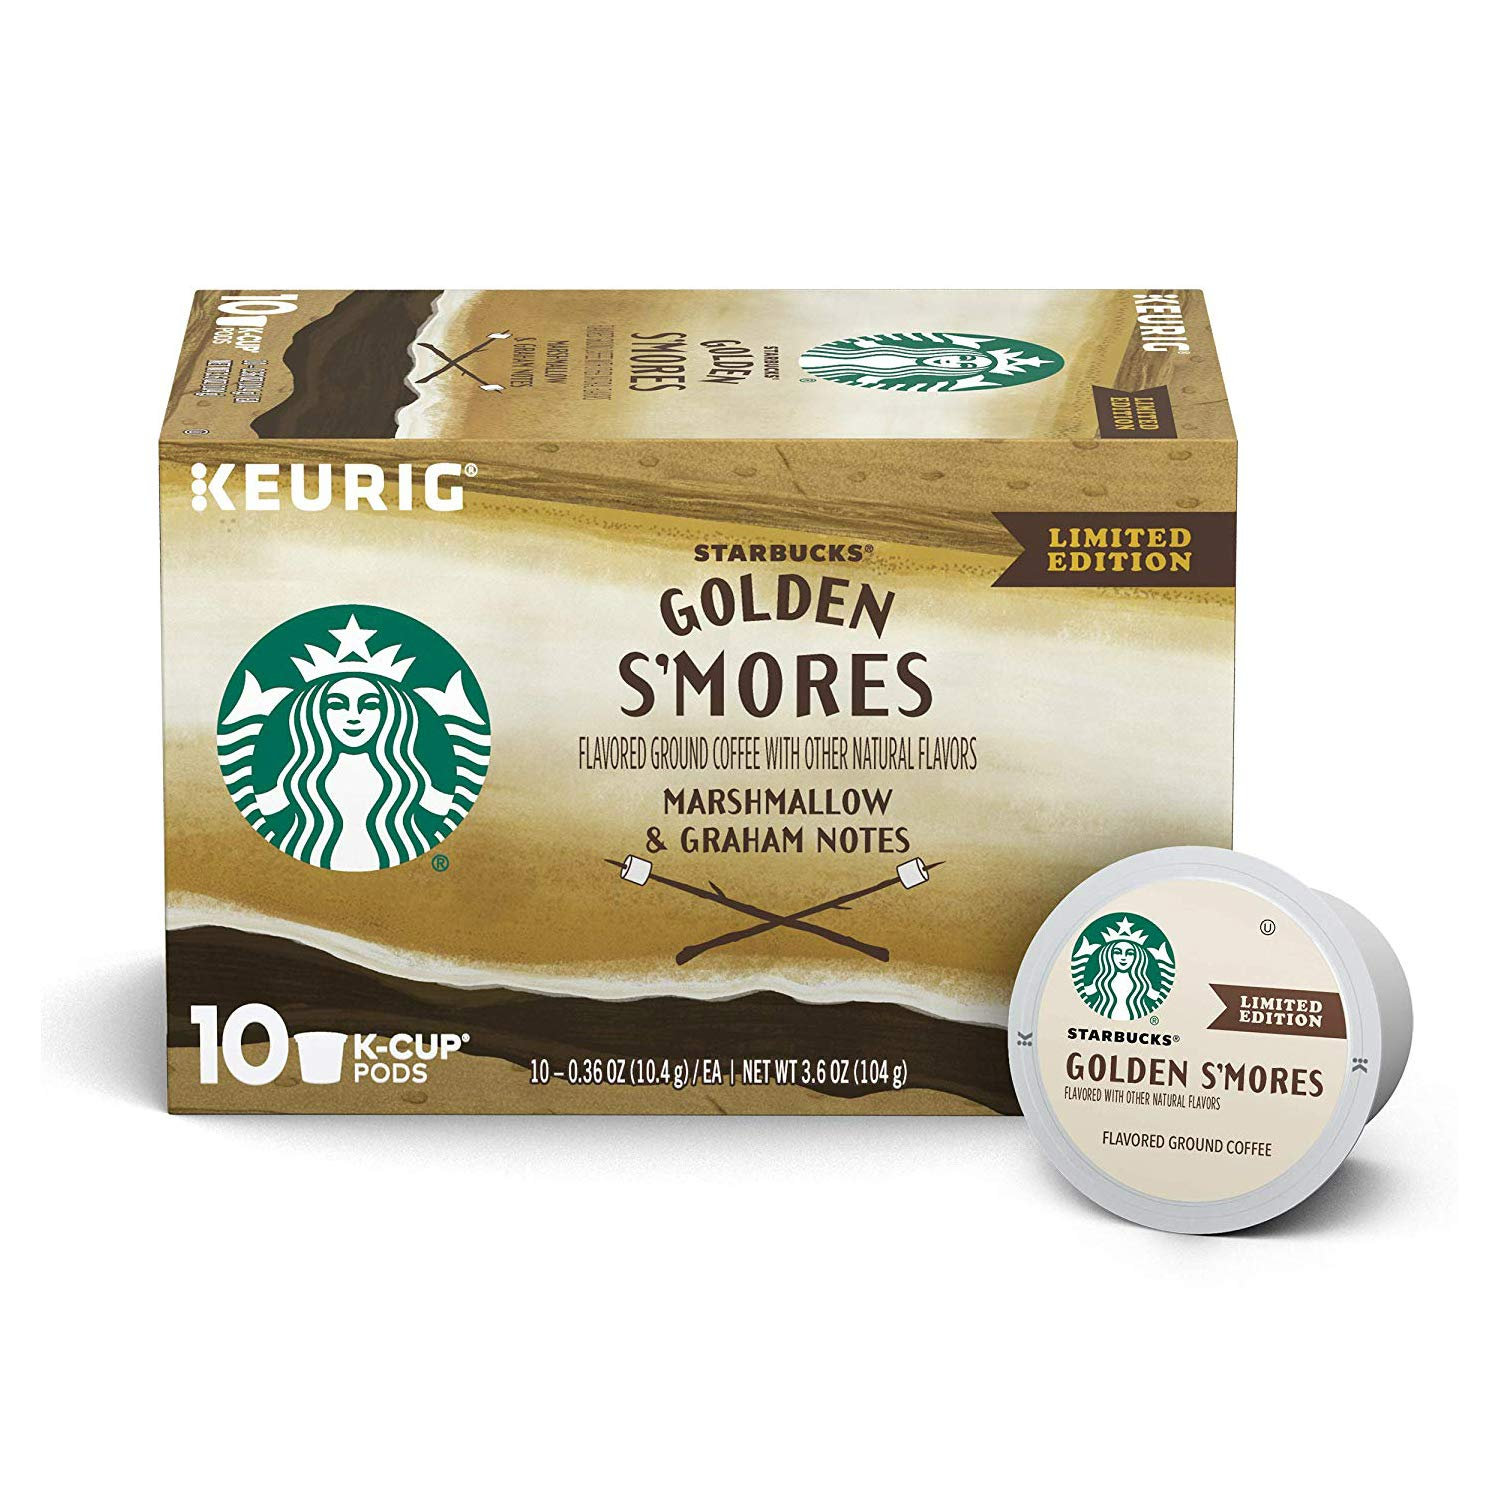 Starbucks Golden S'mores Flavored Blonde Roast Single Cup Coffee for Keurig Brewers, 3.6-oz. boxes of 10